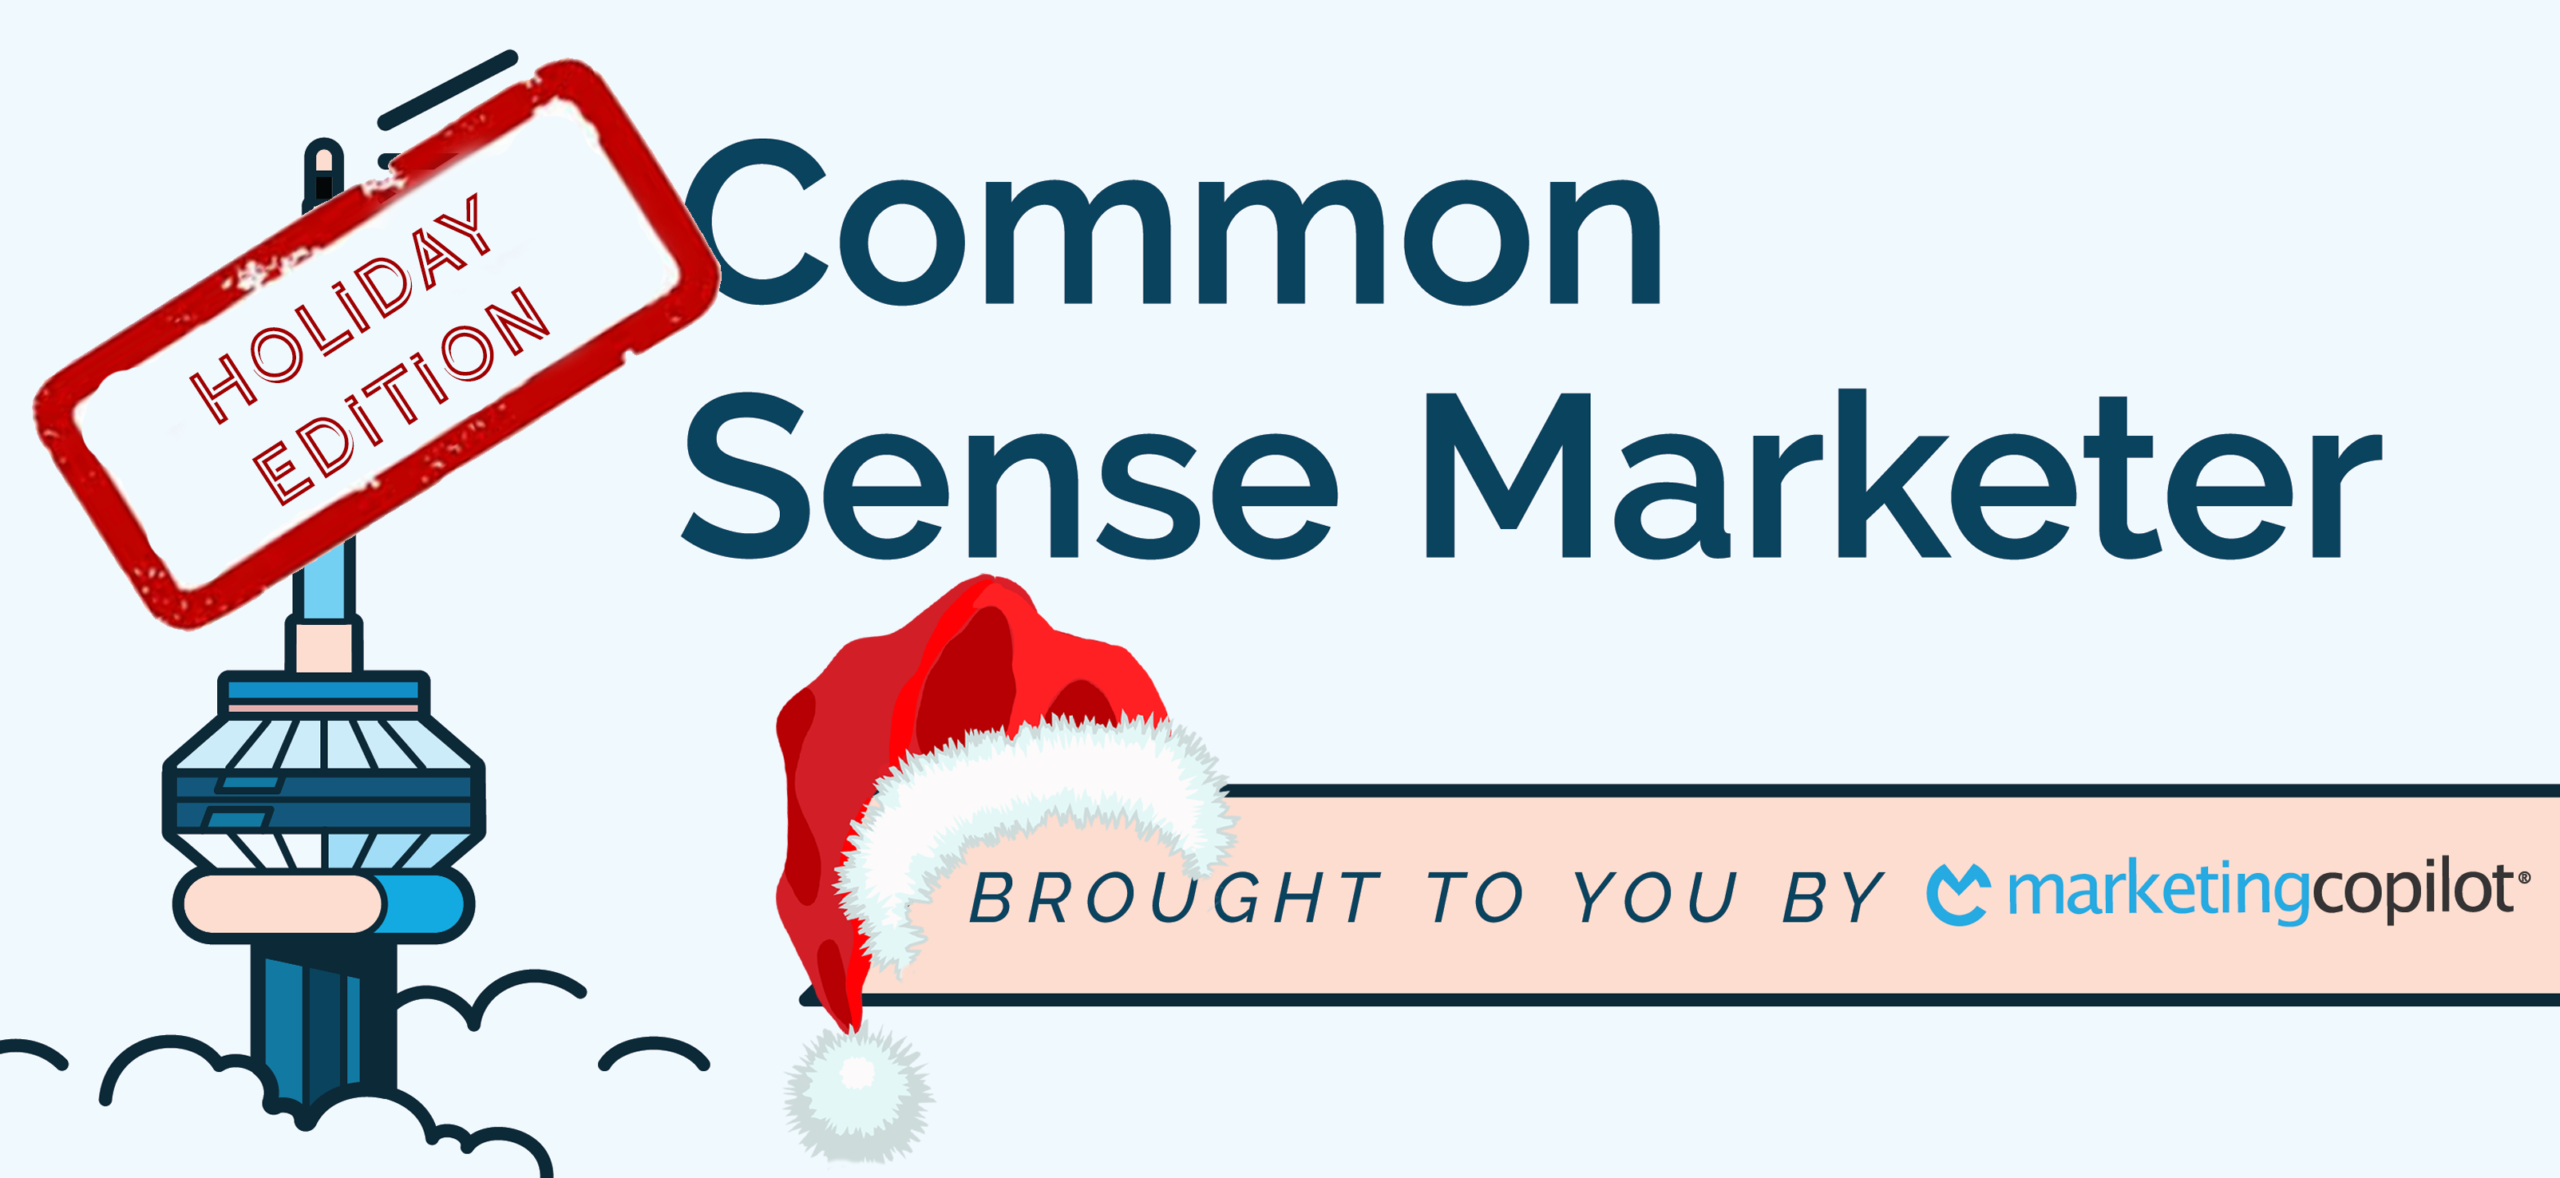 Holiday Edition of Common Sense Marketer Podcast with Mrs. Claus